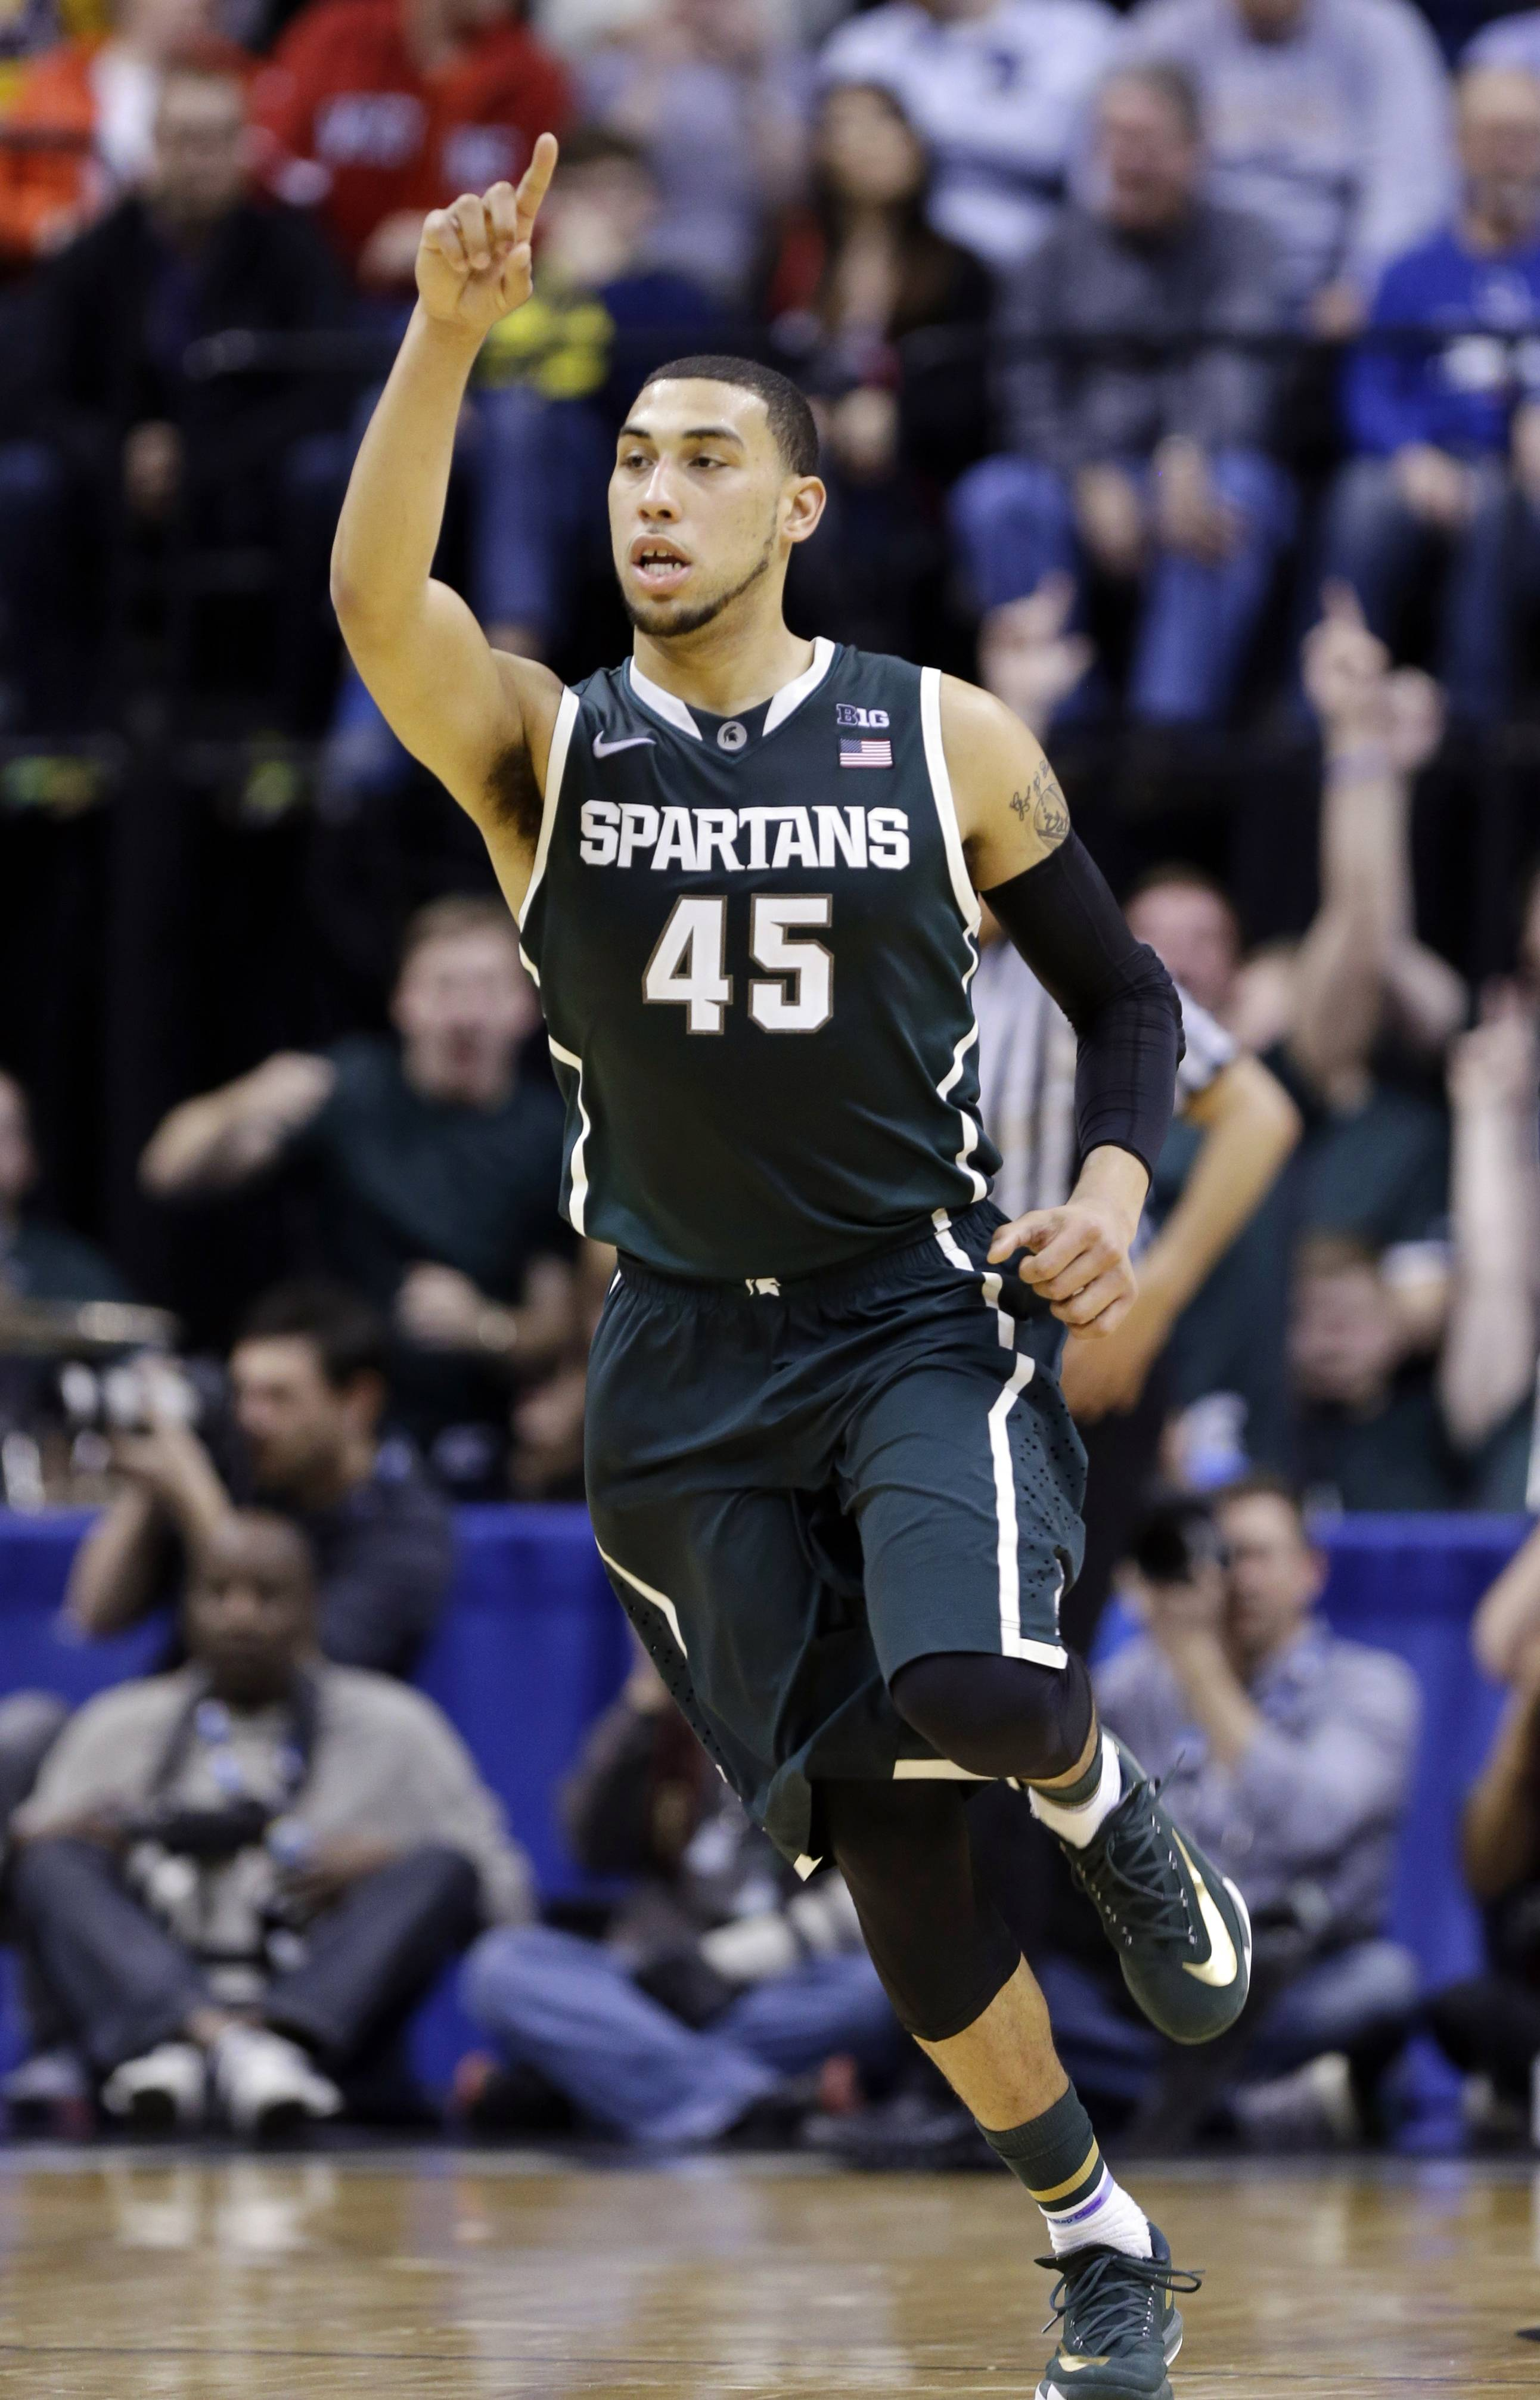 Michigan State guard Denzel Valentine and his Spartan teammates will play rival Michigan in the Big Ten tournament title game on Saturday.